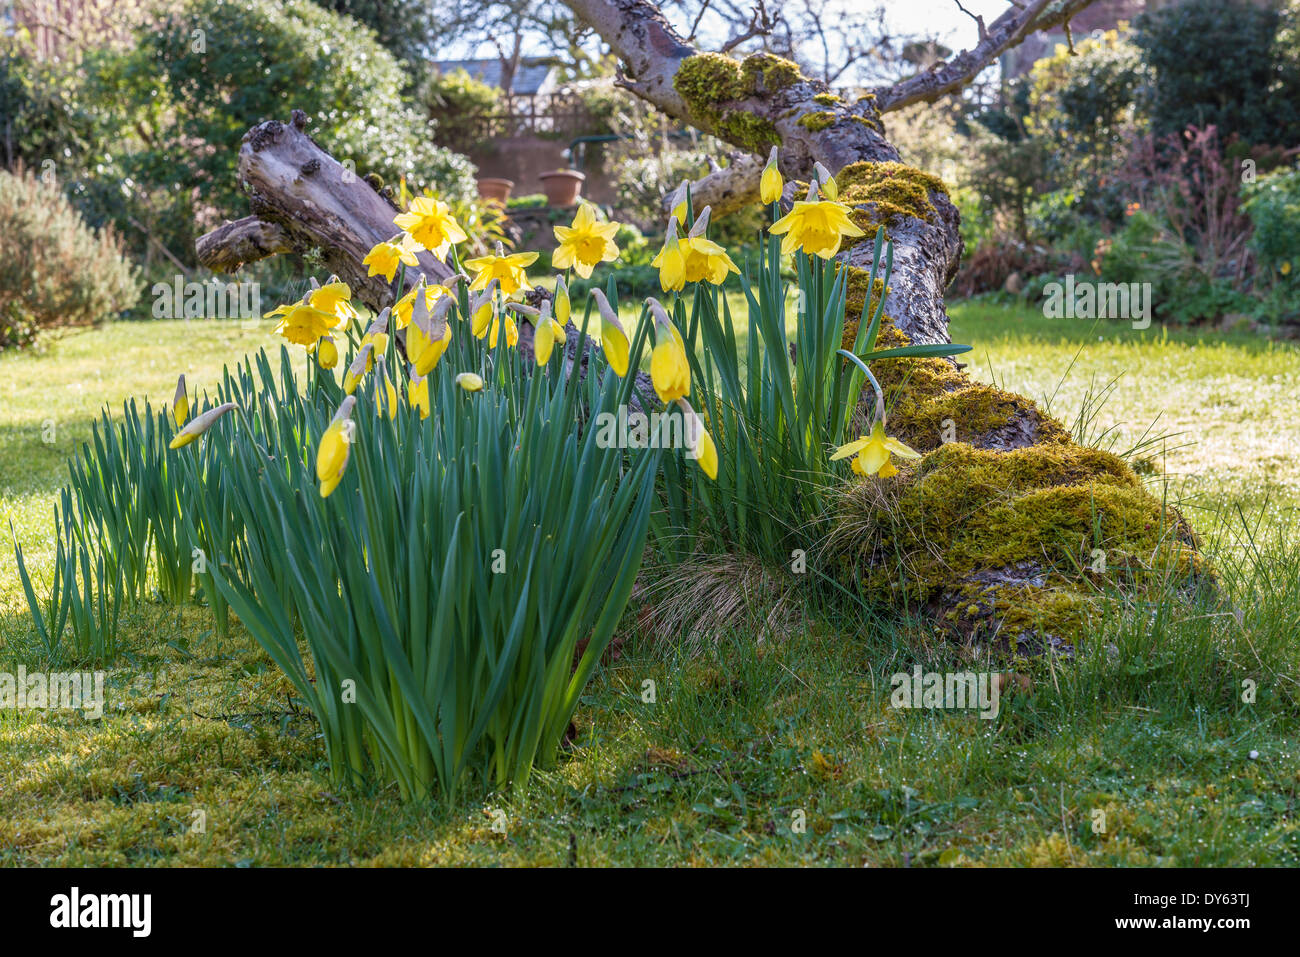 Daffodils growing in garden under old apple tree in spring. Eighth of sequence of 10 (ten) images photographed over five weeks. - Stock Image